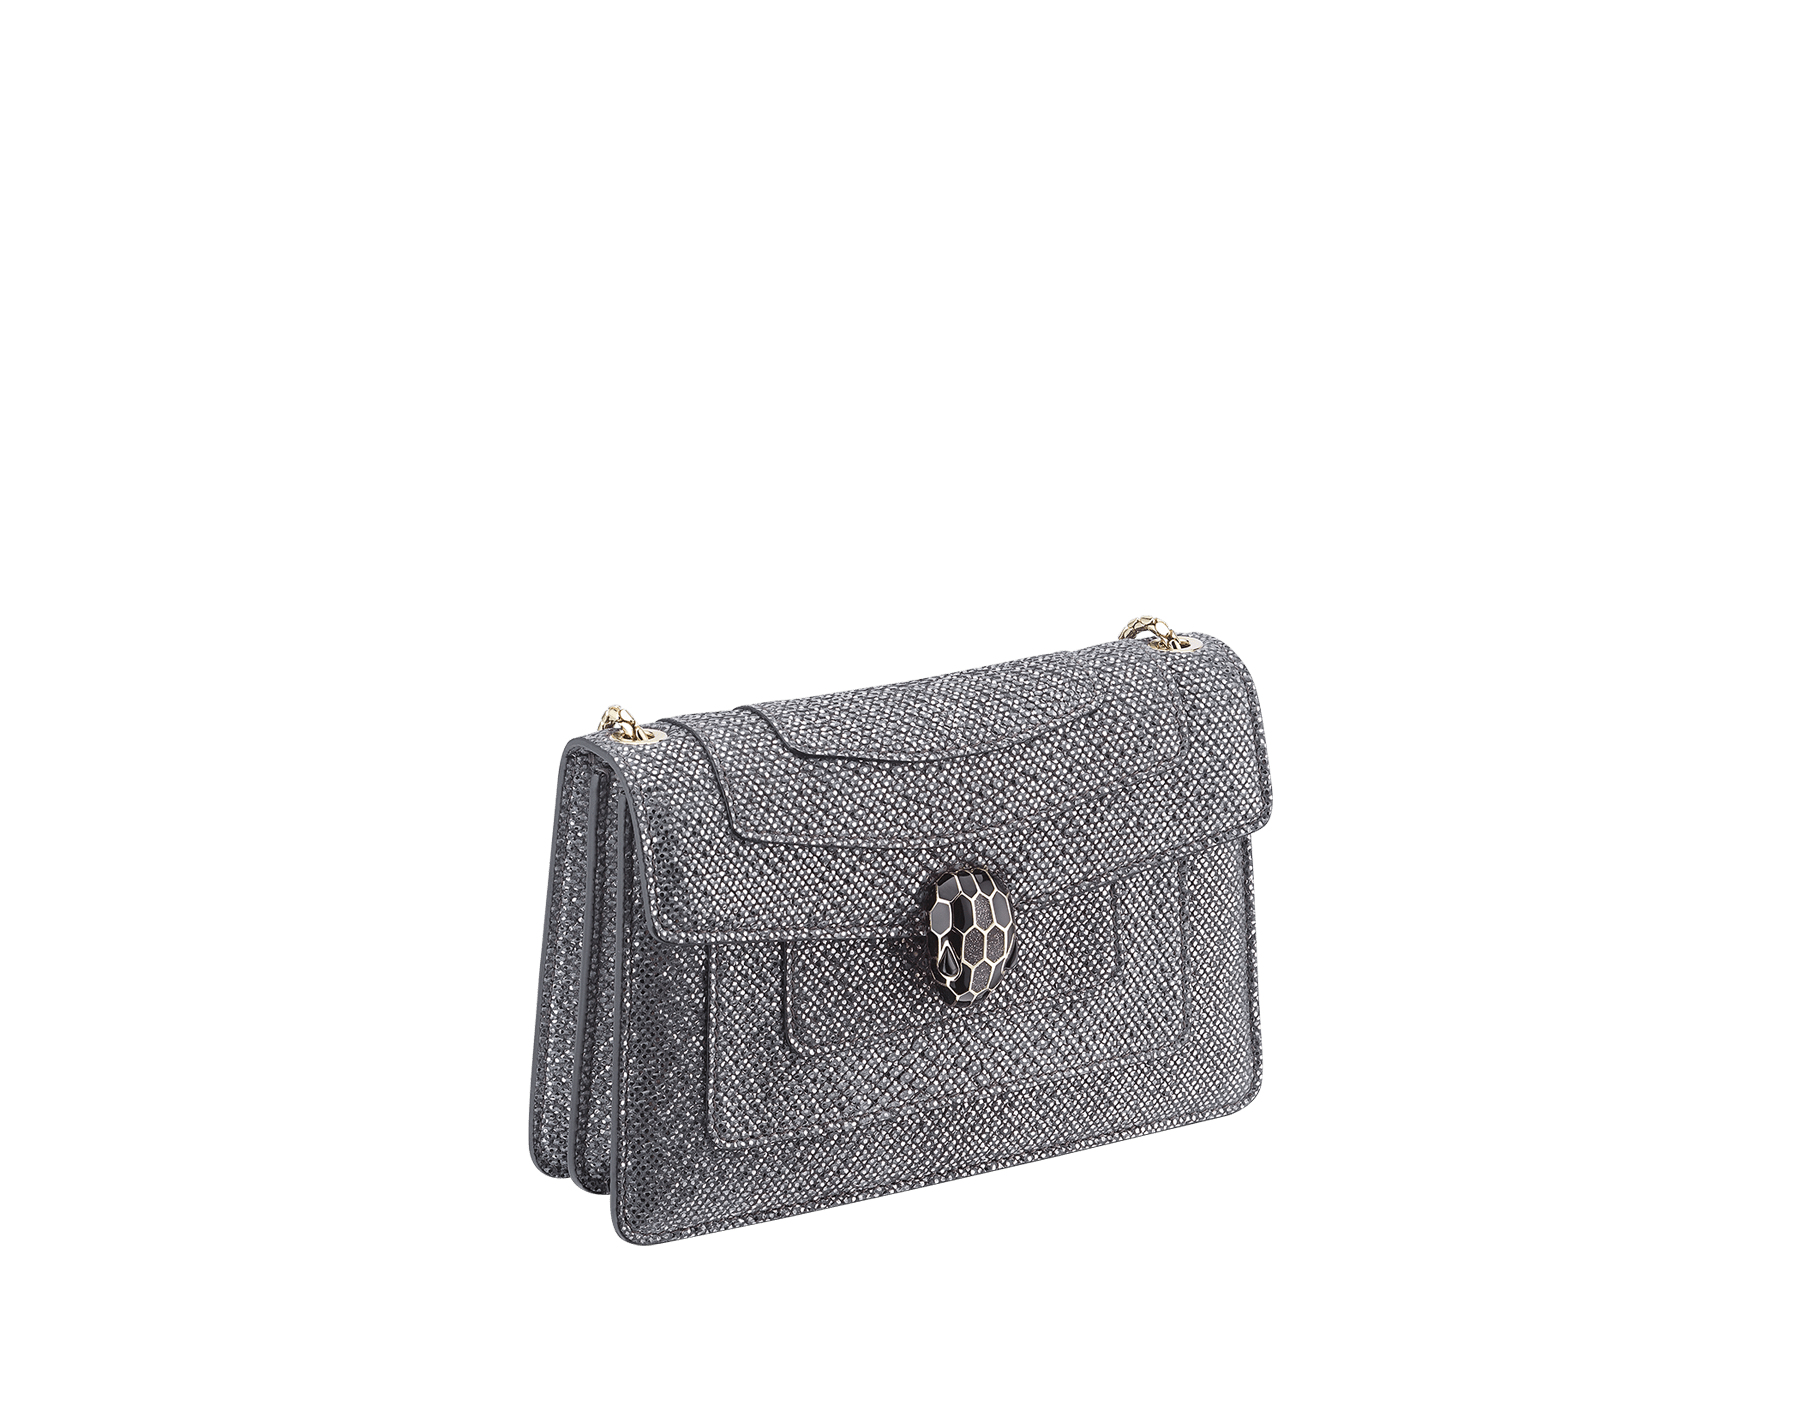 Serpenti Forever mini crossbody bag in white agate metallic karungskin. Brass light gold-plated snake head closure in black and white enamel, with black onyx eyes. 986-MK image 2